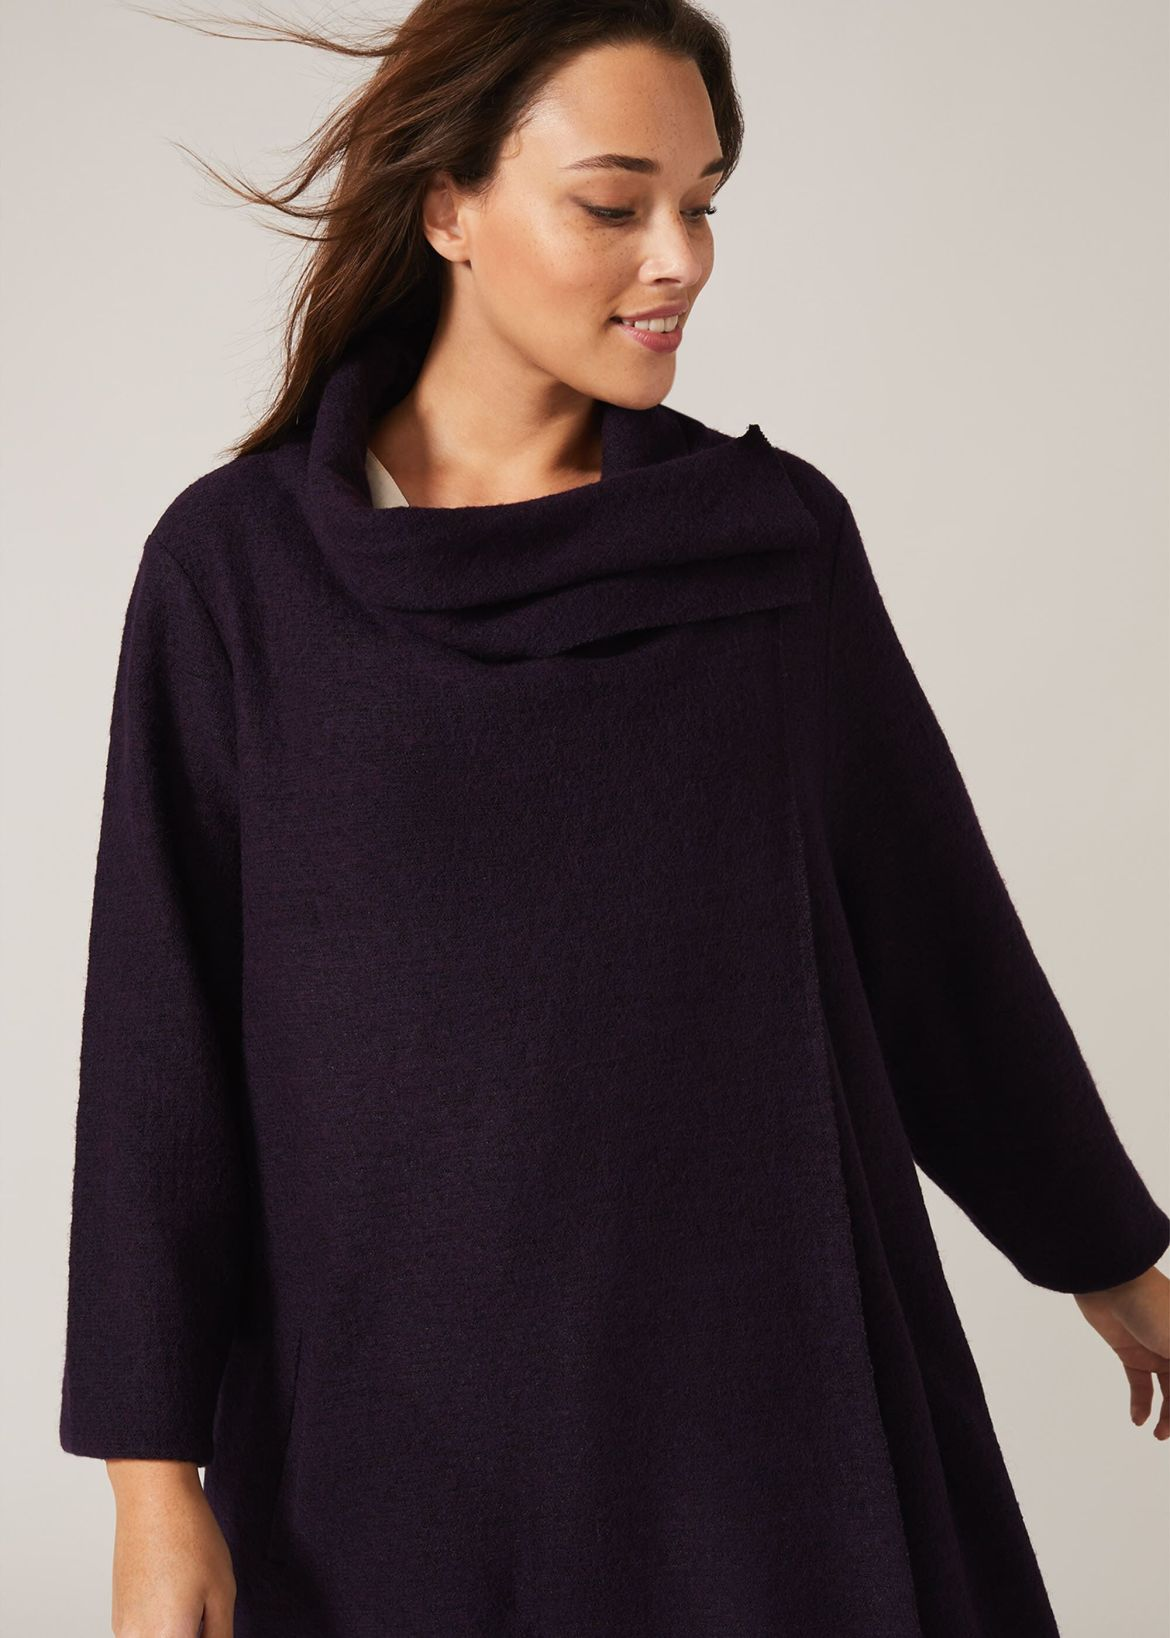 Bellona Knit Coat